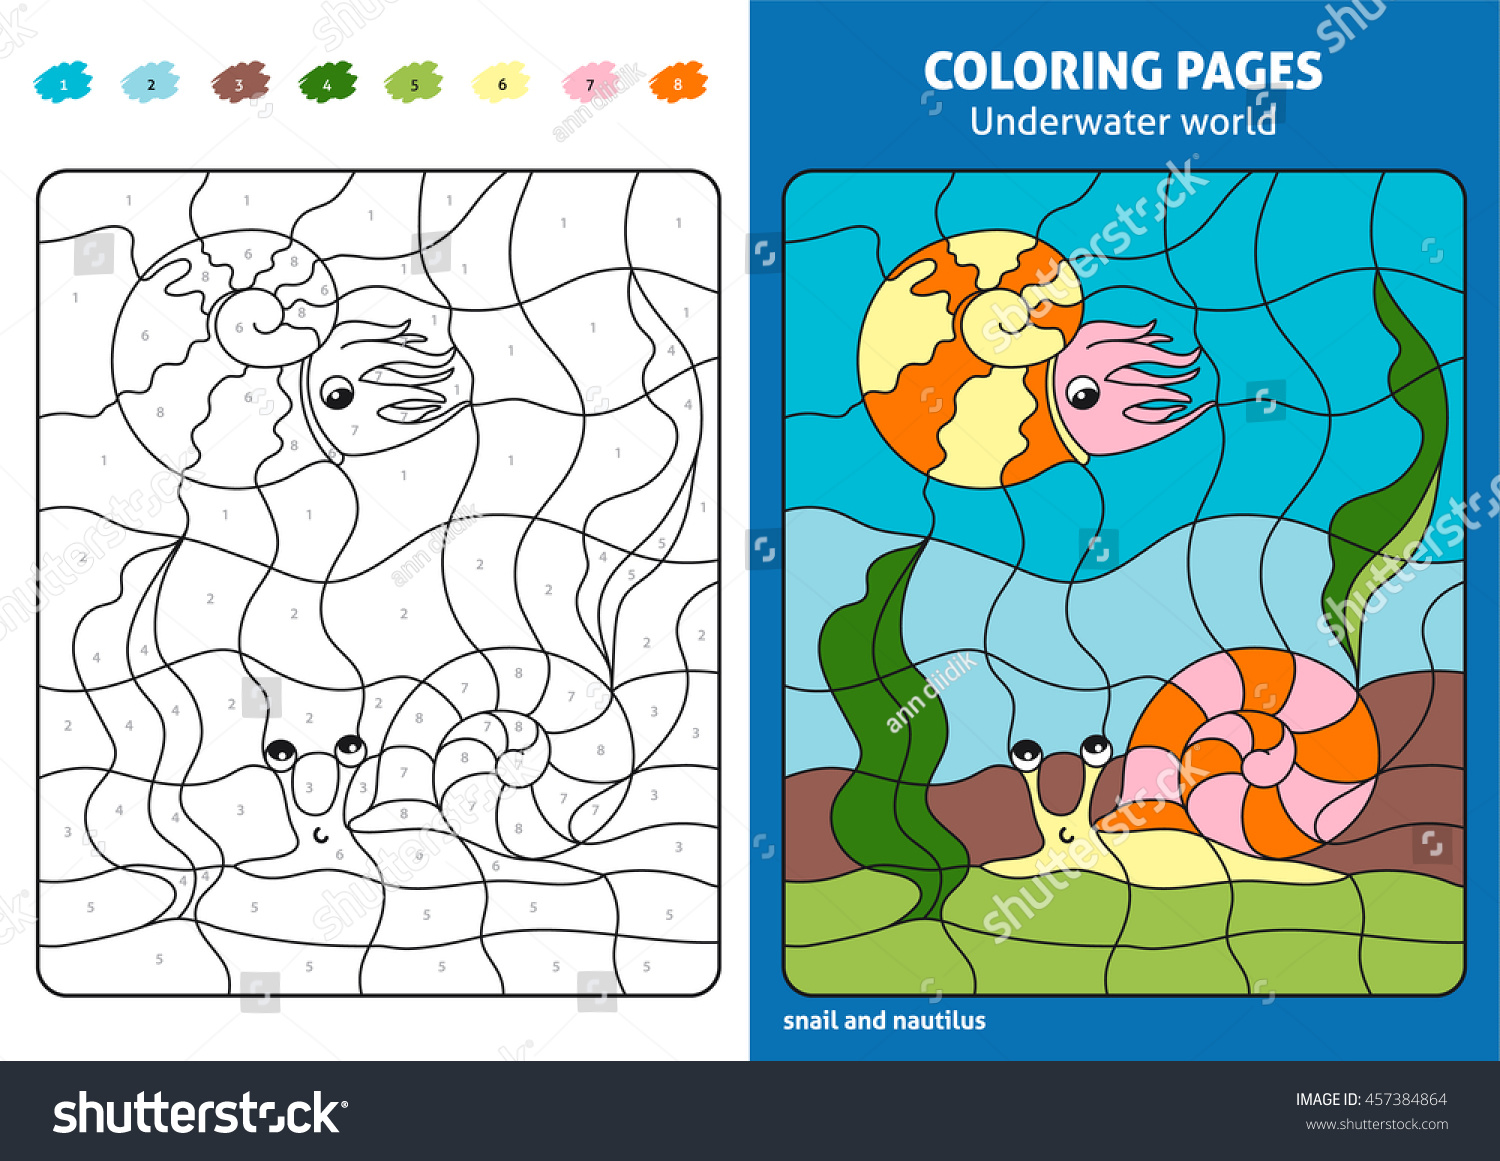 Printable coloring pages underwater - Underwater World Coloring Page For Kids Snail And Nautilus Printable Design Coloring Book